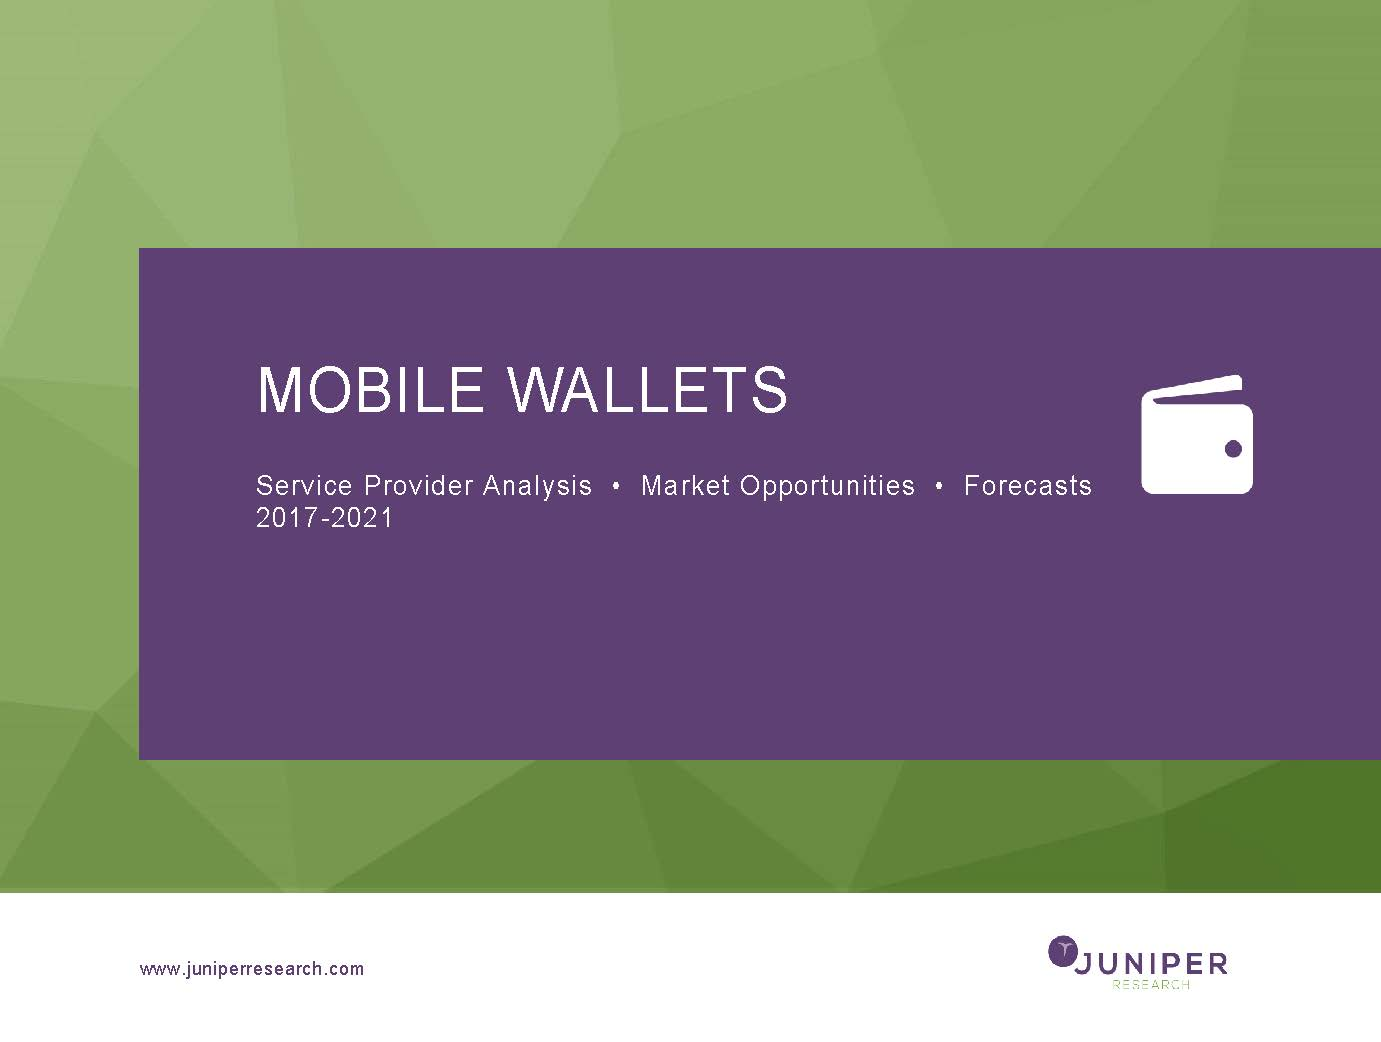 Mobile Wallet Spend to Rise by More than 30% this Year, Reaching $1.35 Trillion